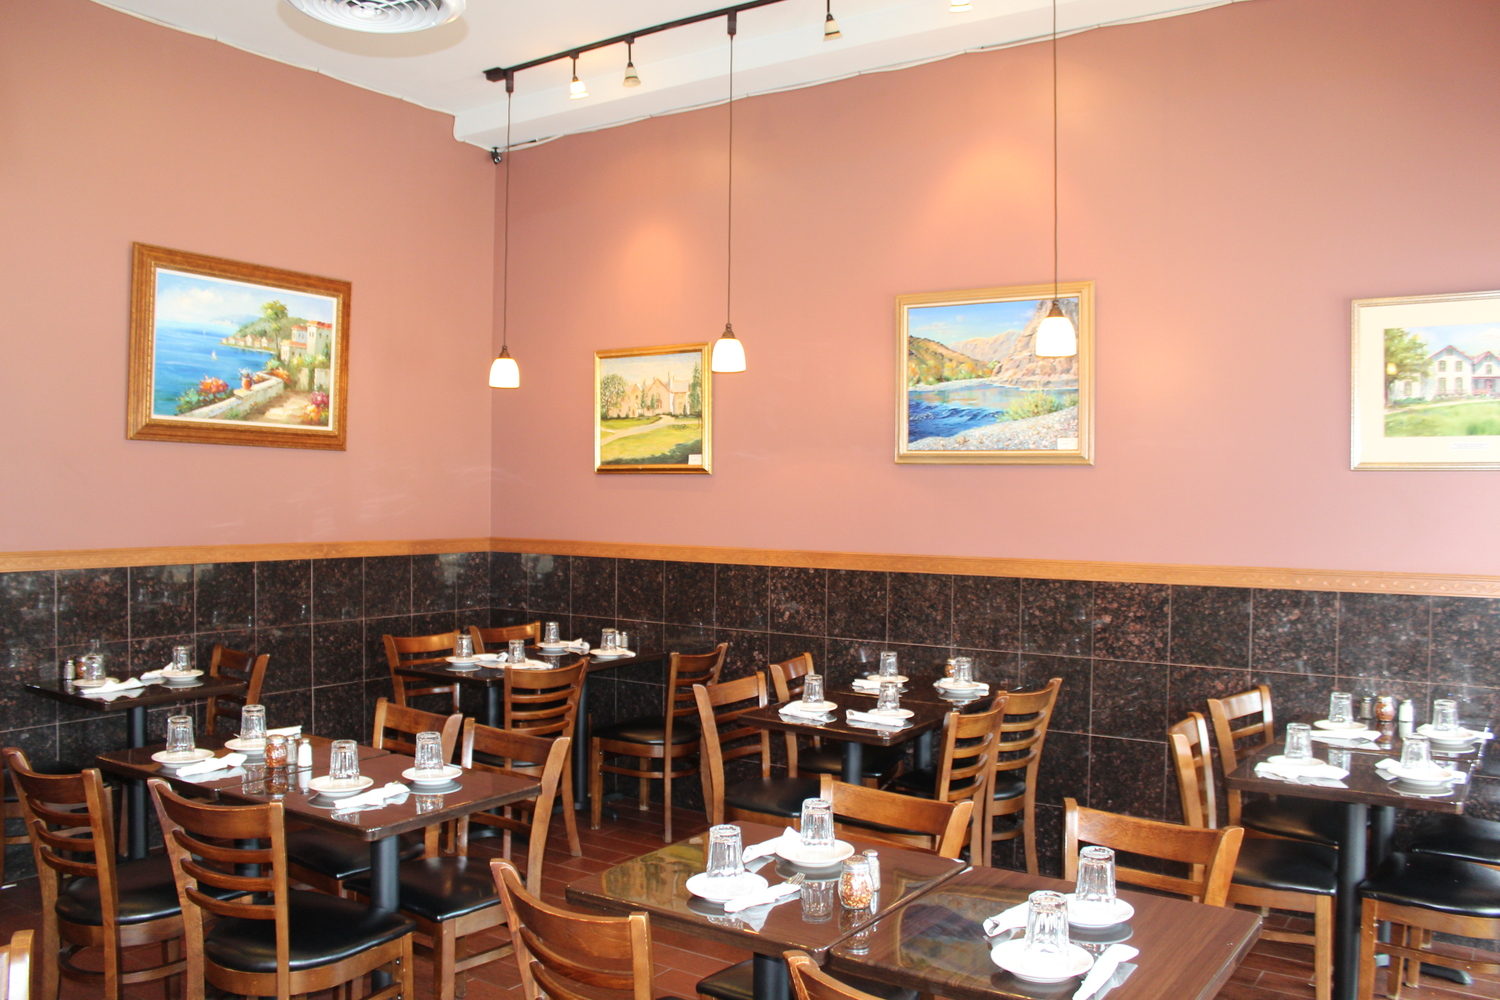 Ruffino's Spaghetti House event space in Washington DC, Maryland, Virginia, DC Area